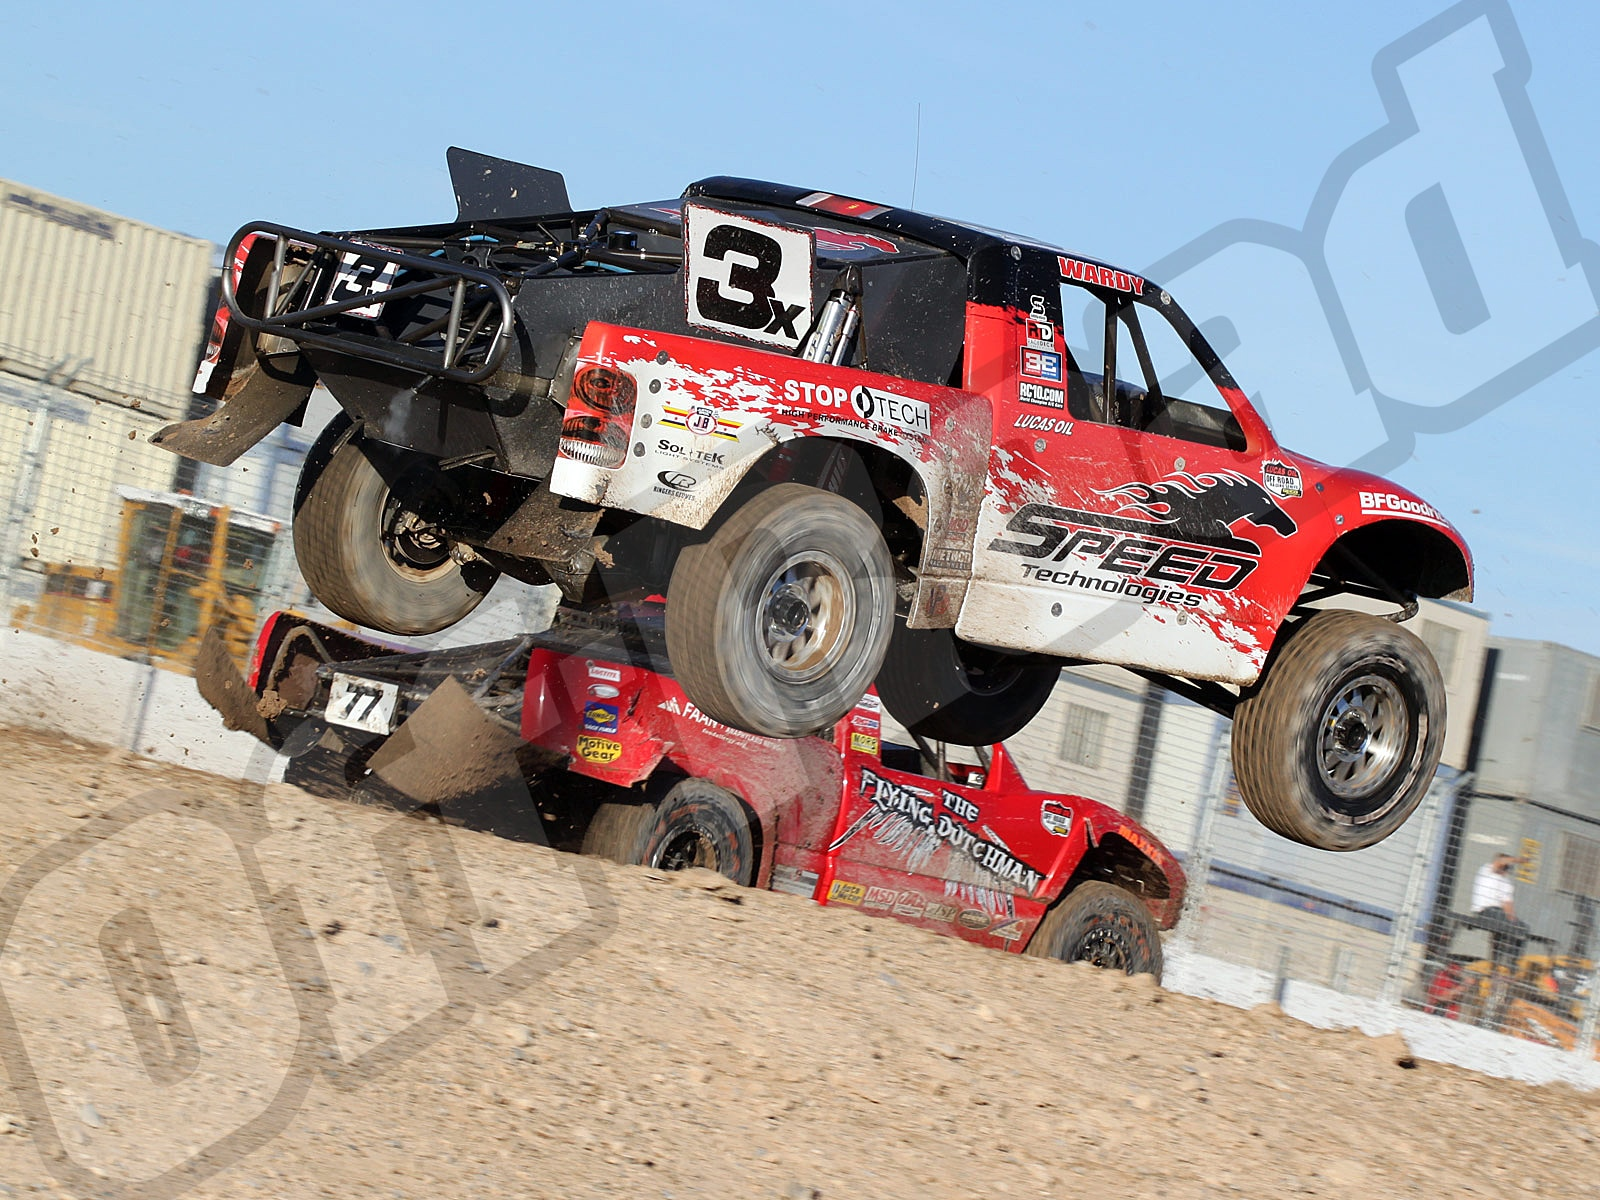 111610or 9308+2010 lucas oil off road racing series+pro 2